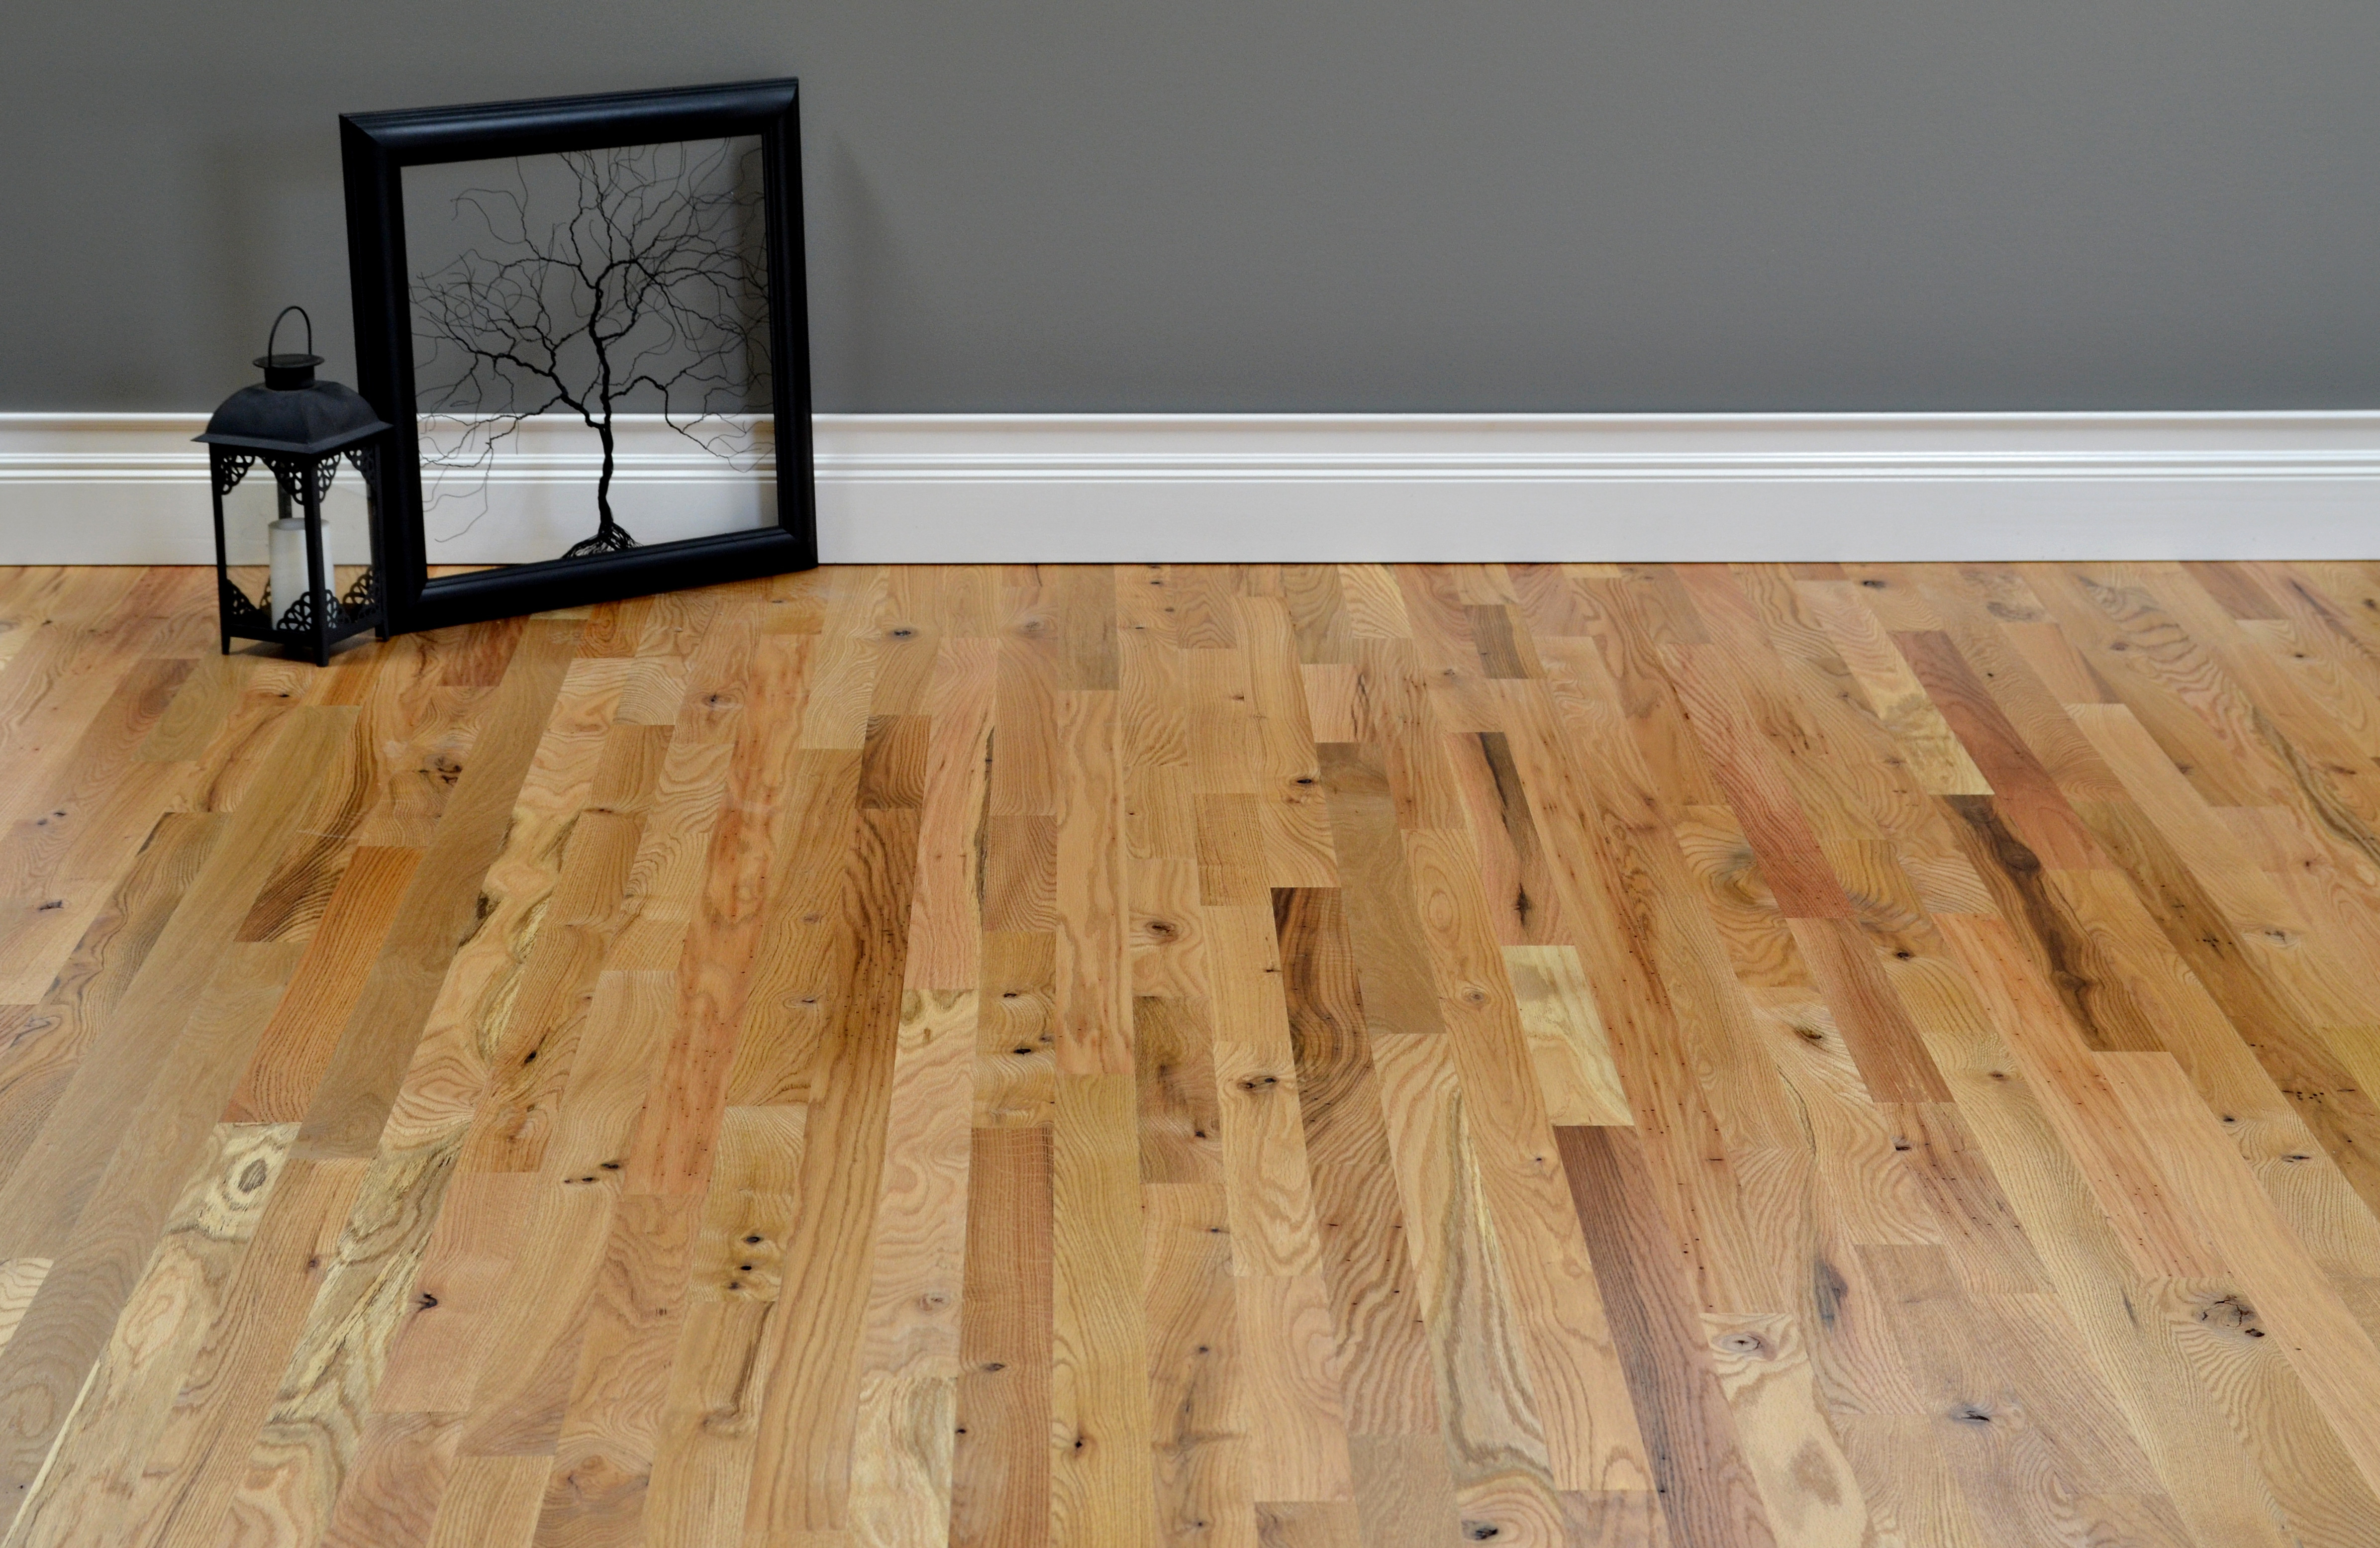 staining hardwood floors after sanding of hardwood floor before and after elegant 50 new how to stain hardwood intended for hardwood floor before and after elegant 50 new how to stain hardwood floors 50 s